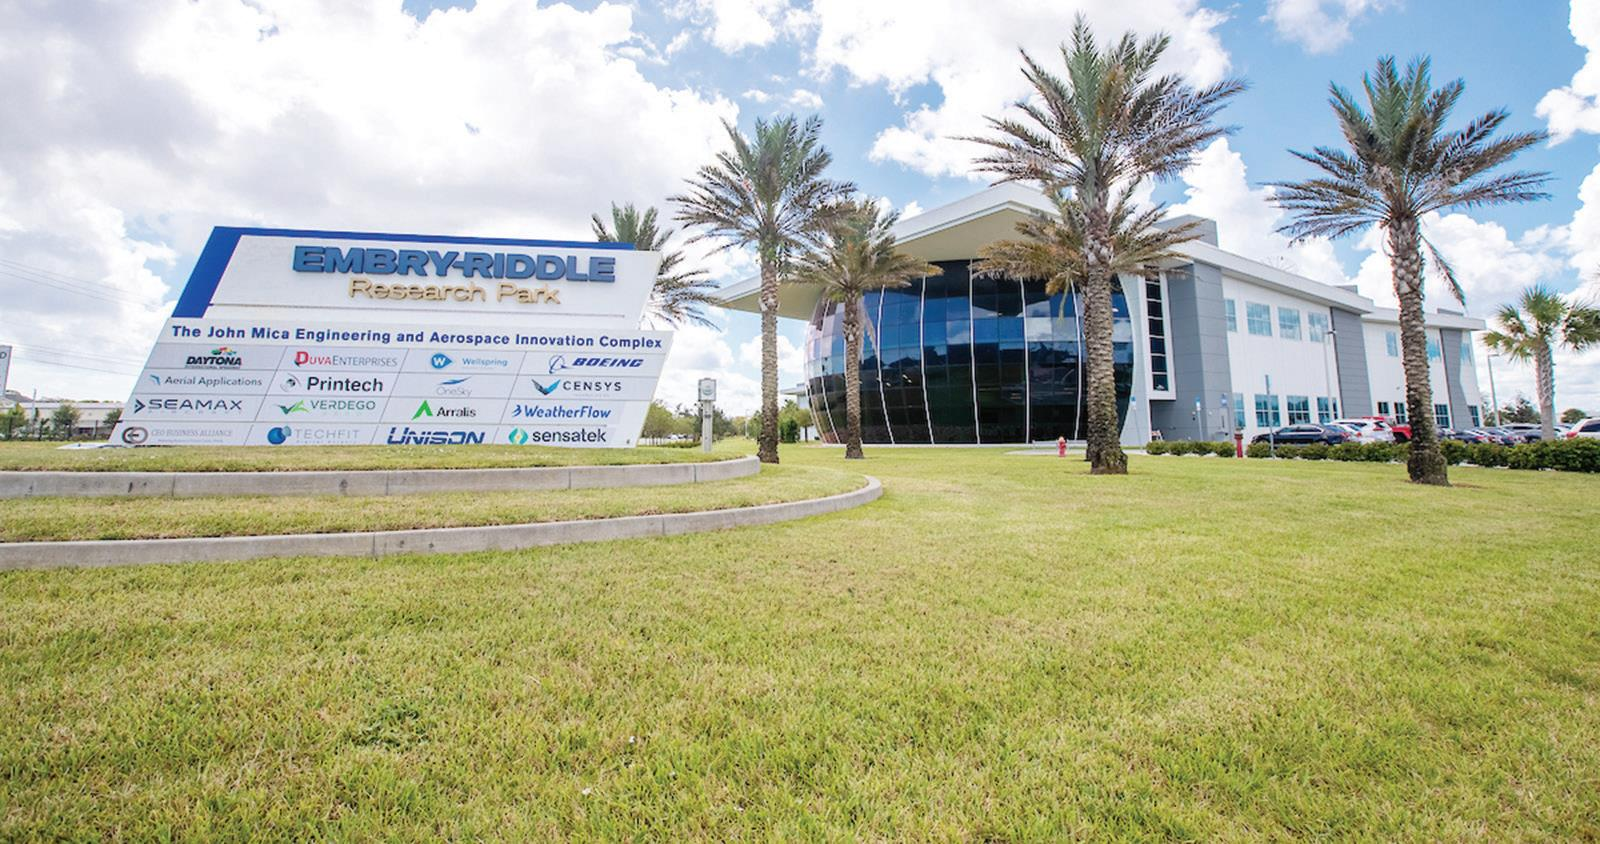 Embry-Riddle's Research Park to support business and job growth